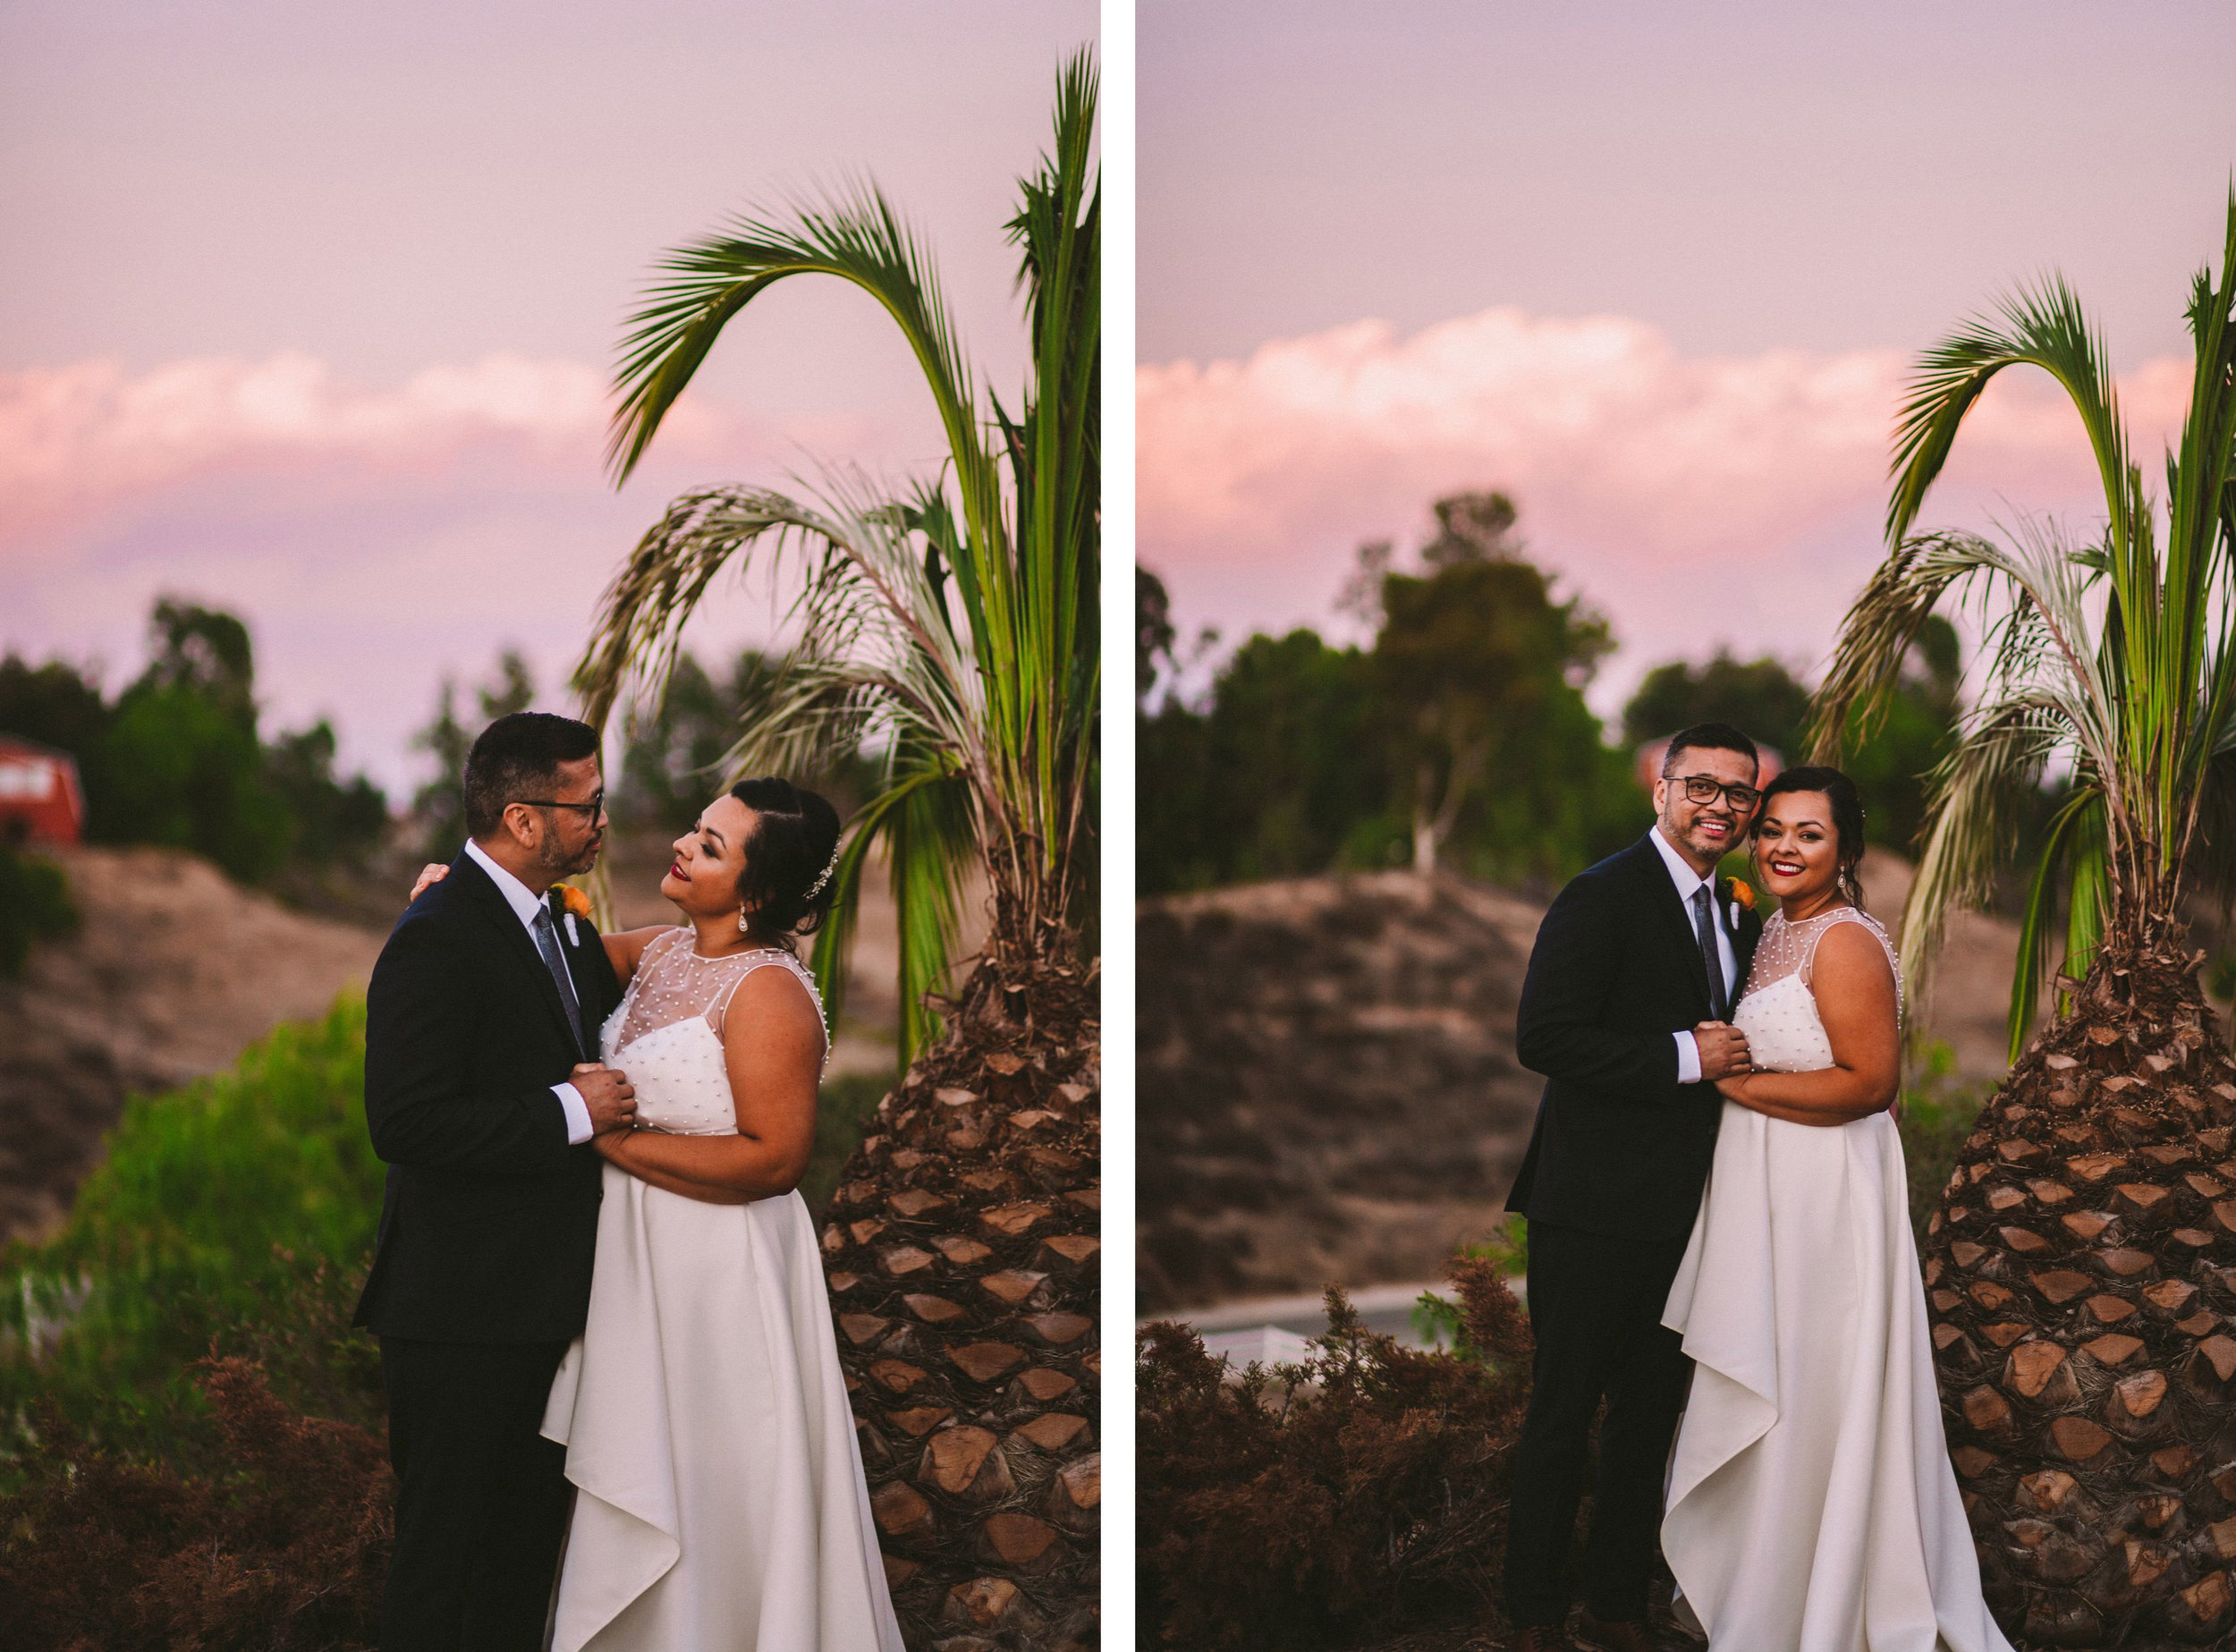 Intimate & colorful Temecula Documentary Wedding Photography-92.jpg